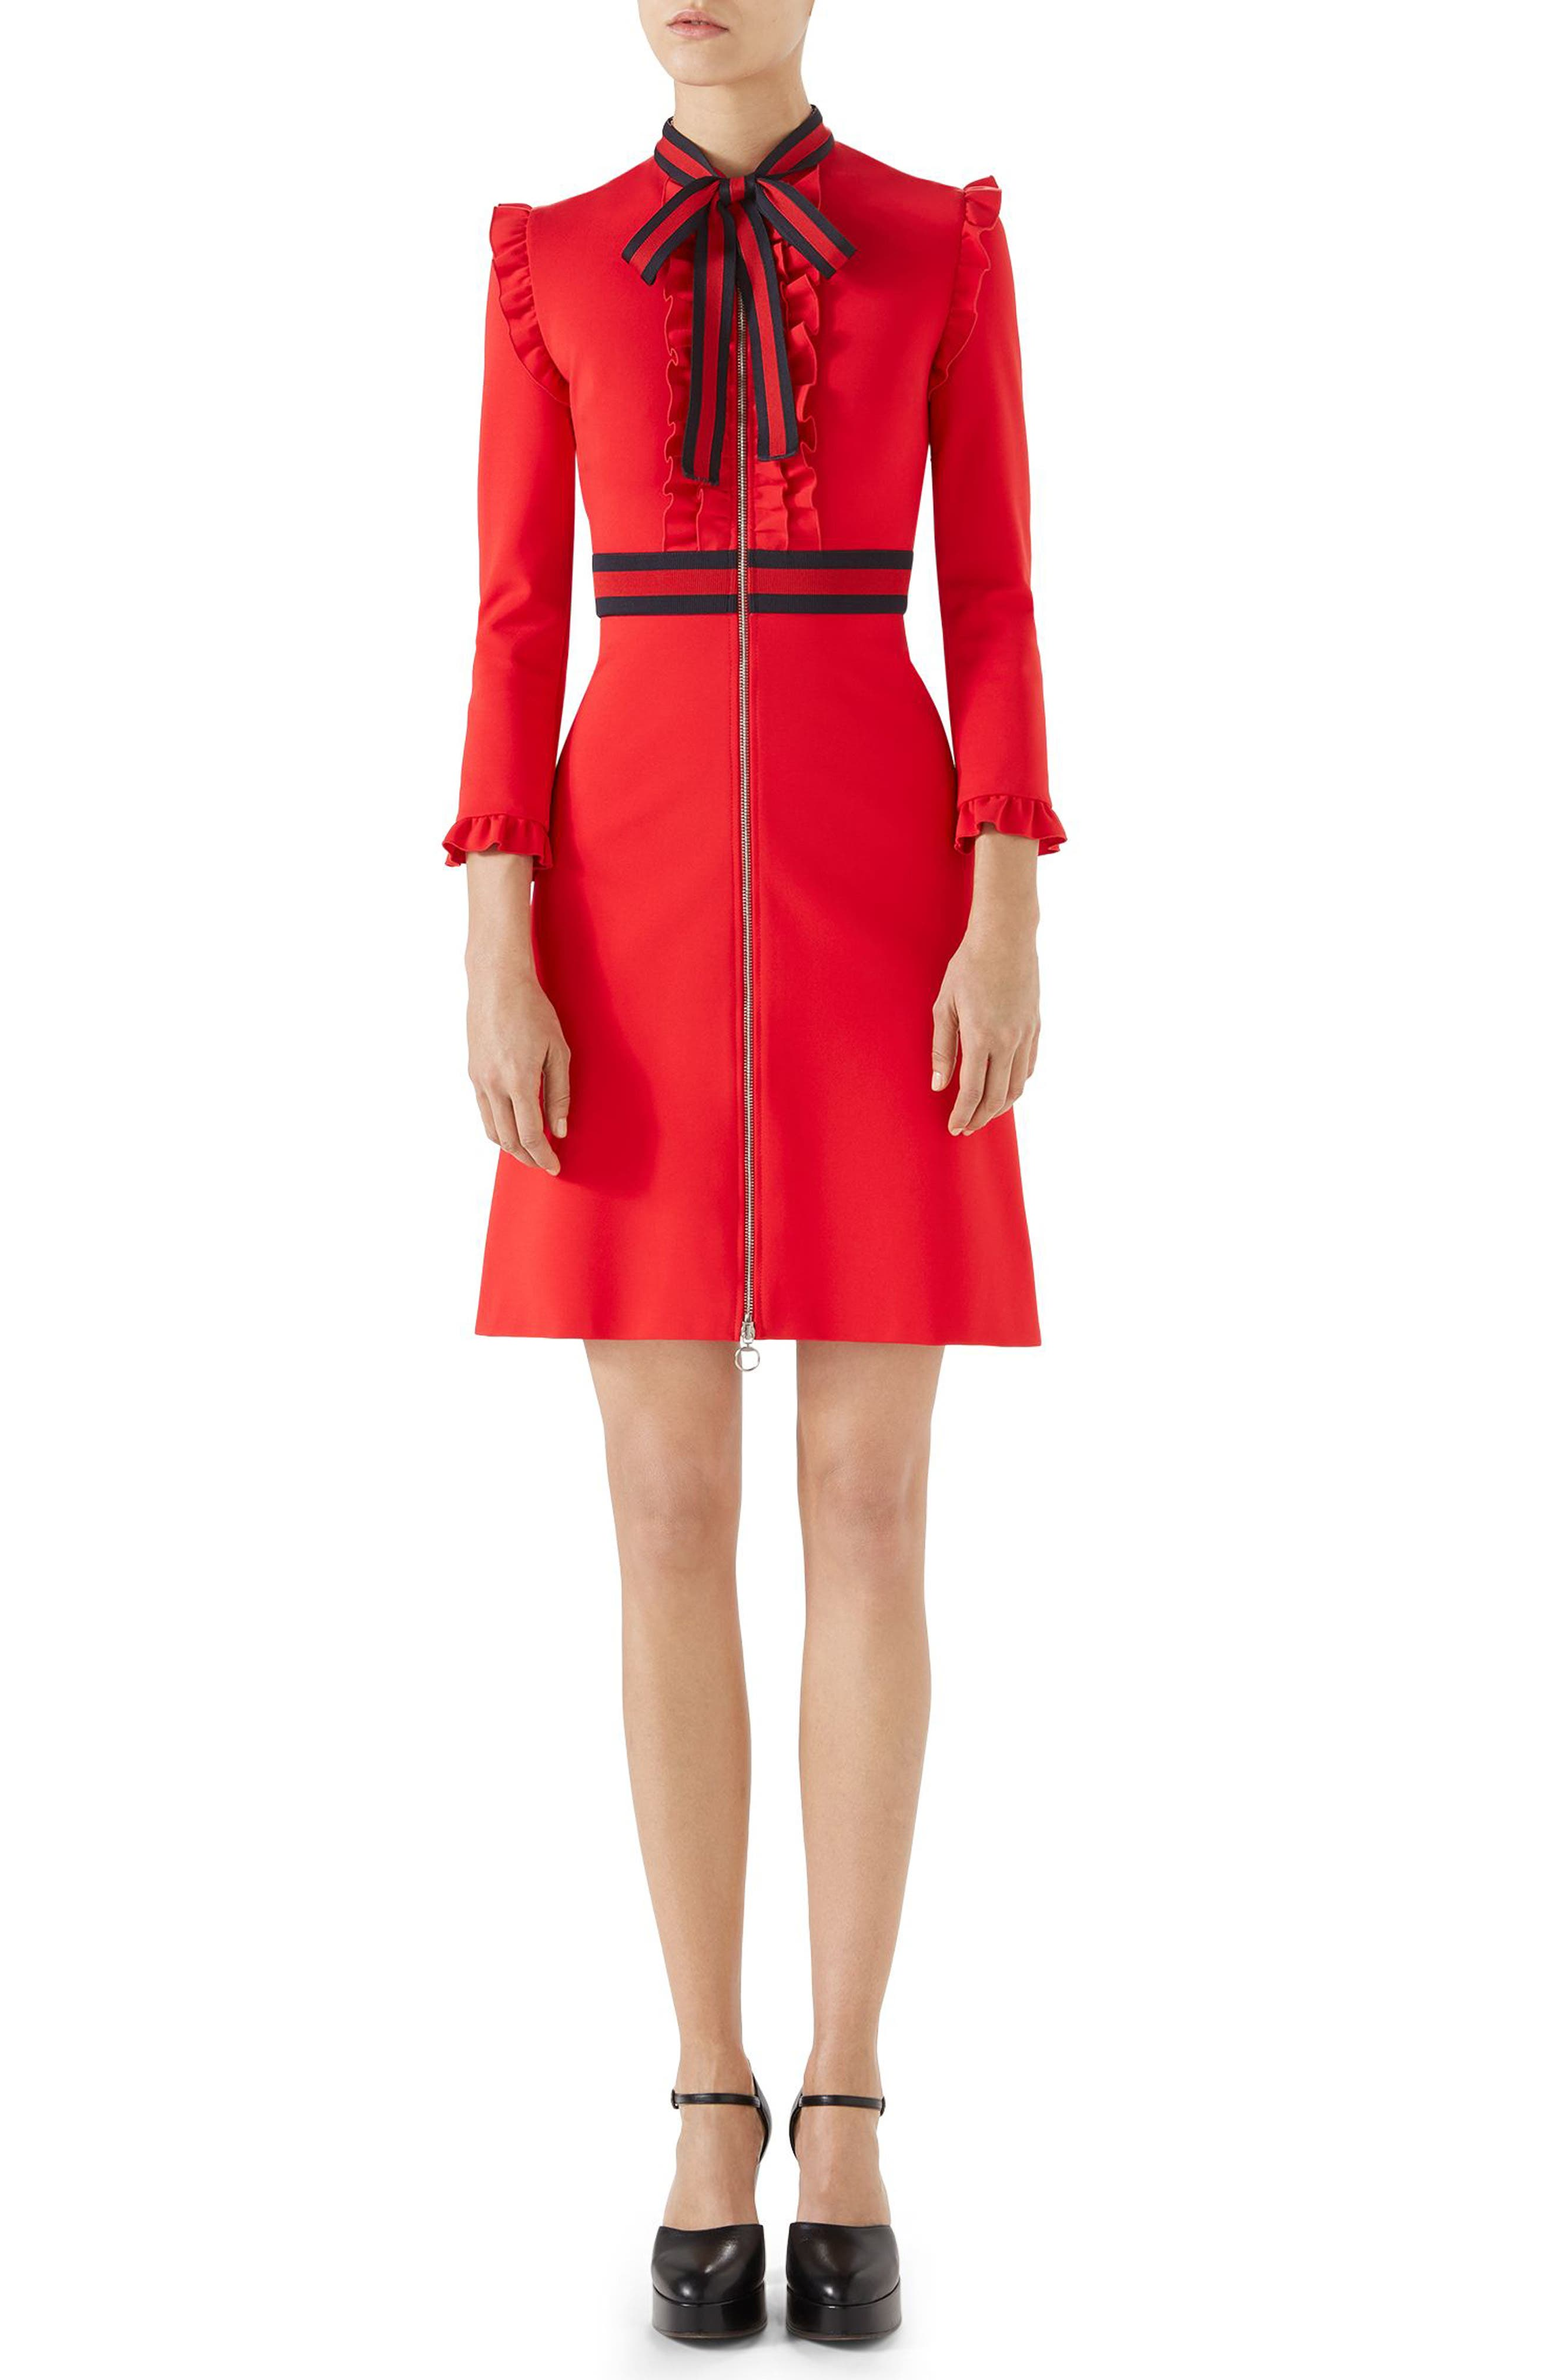 Gucci Ruffle Tie Neck Dress